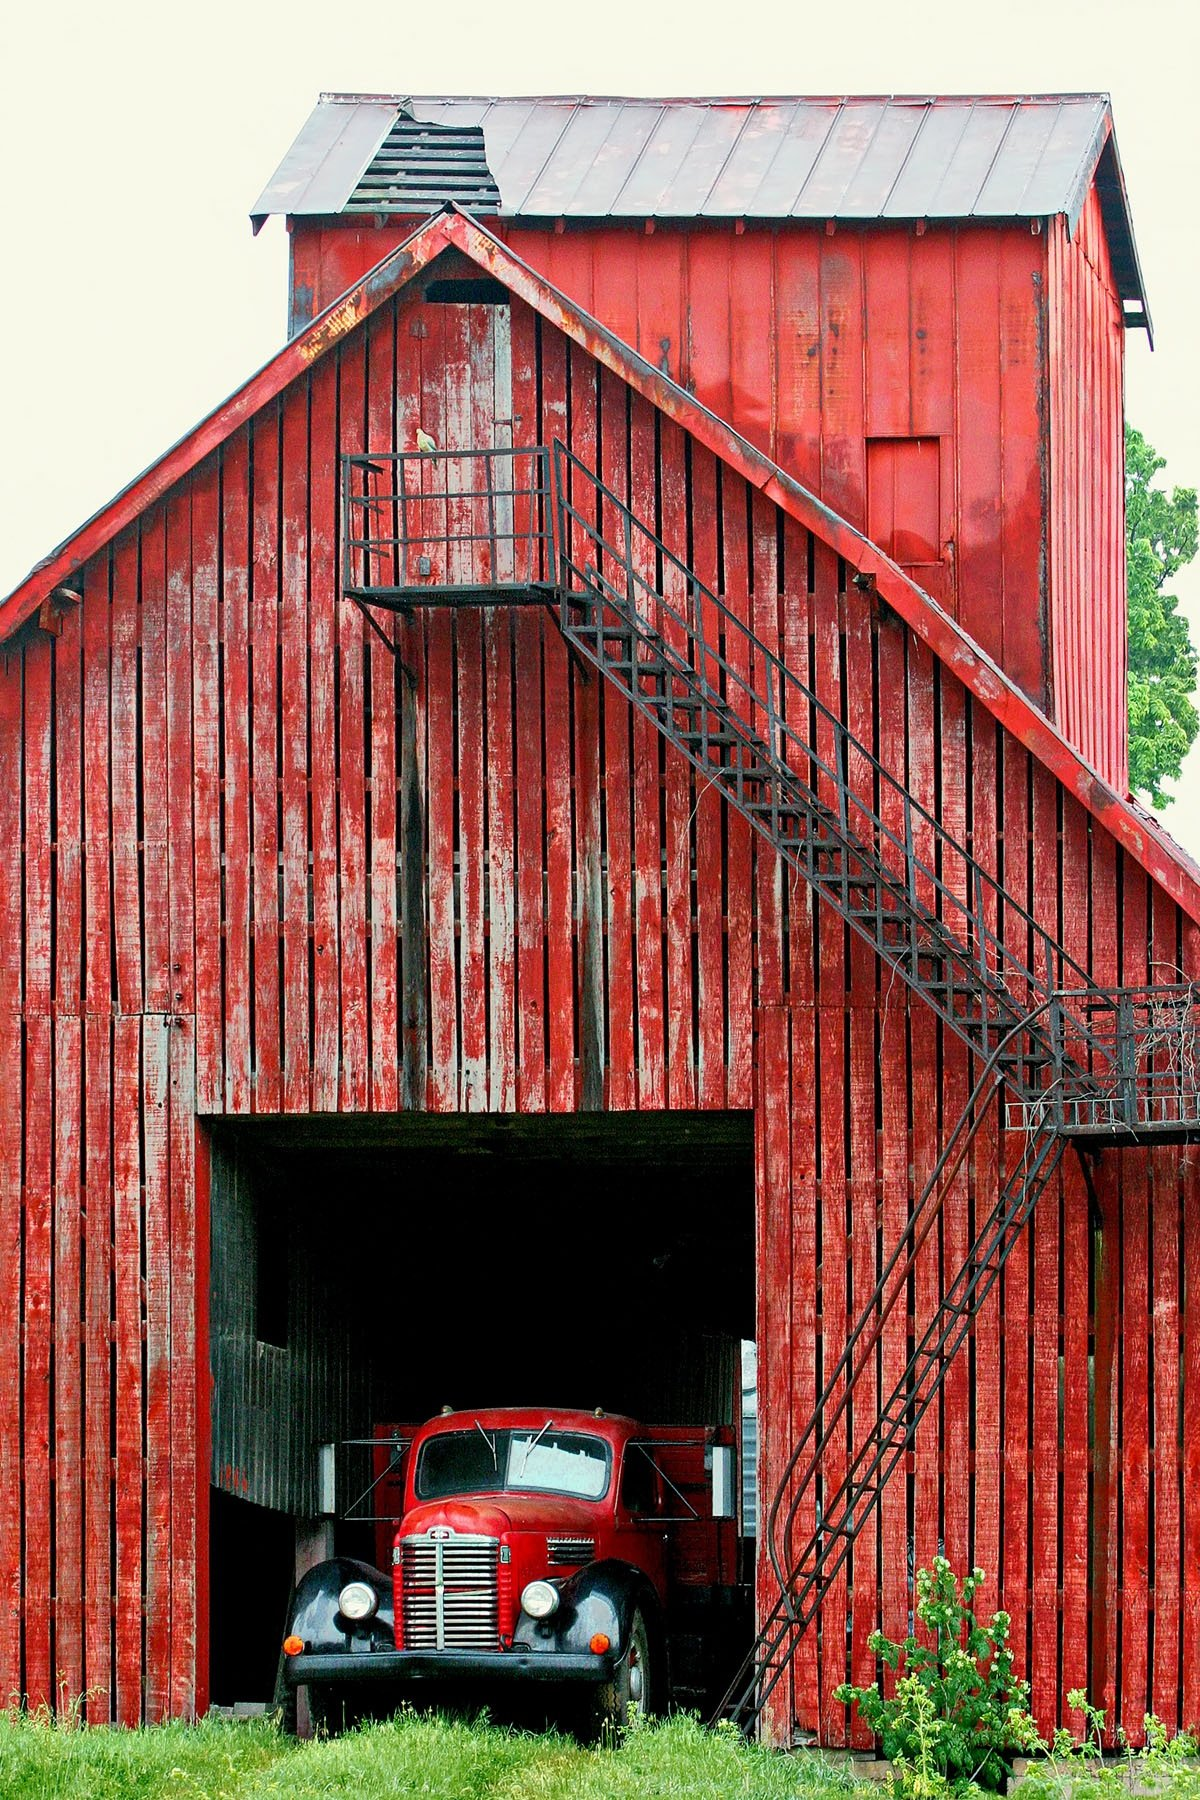 RED TRUCK - I use to pass this barn every day on the way to and from work, but it was always so cluttered around it you just couldn't get a good photo. Then one day this old red truck was there, and that  made  the  shot. I haven't seen the truck since!